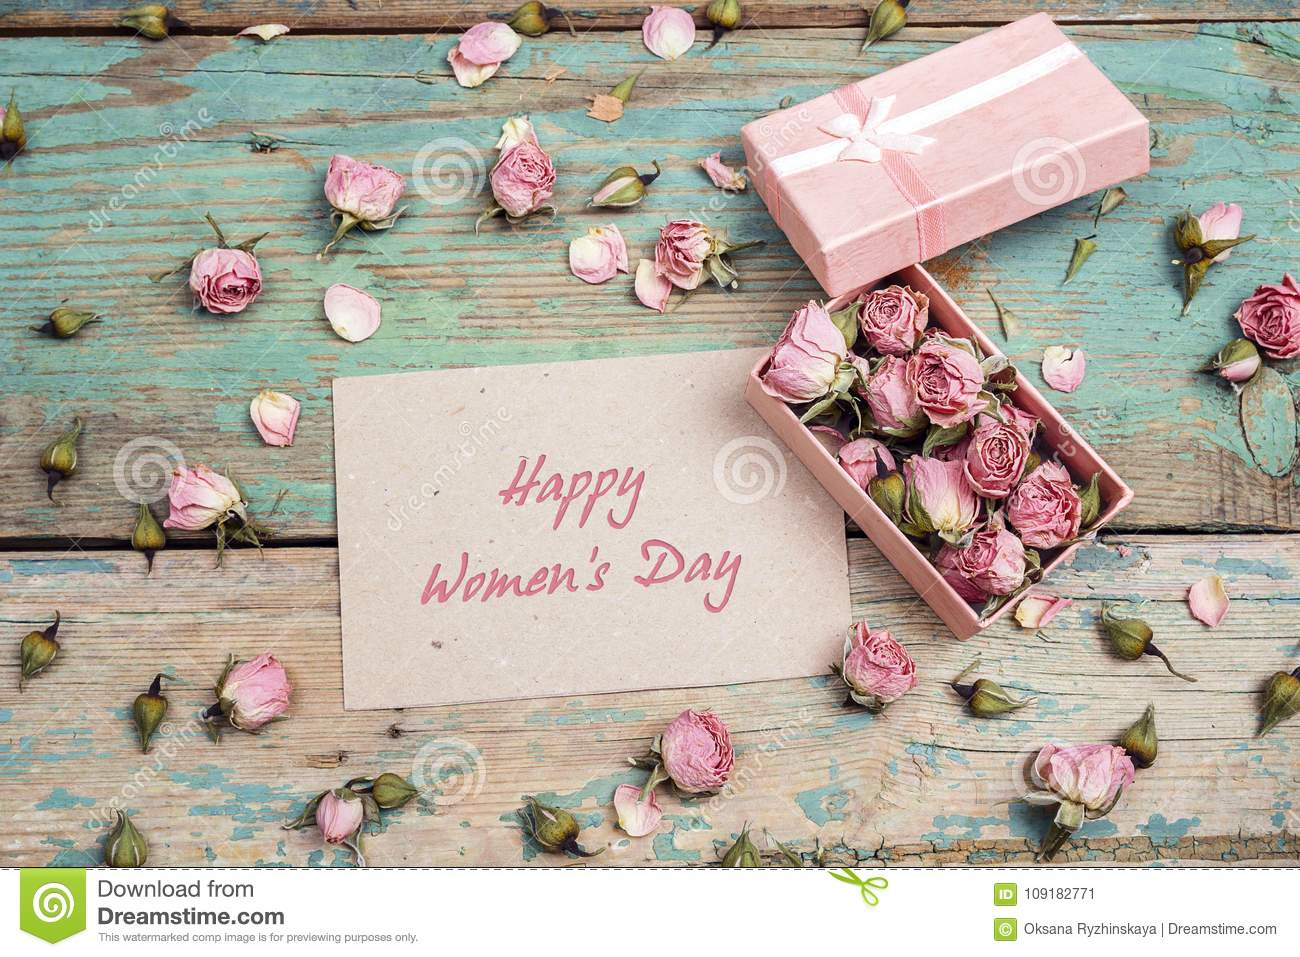 Women`s Day greeting message with little pink roses in a box on